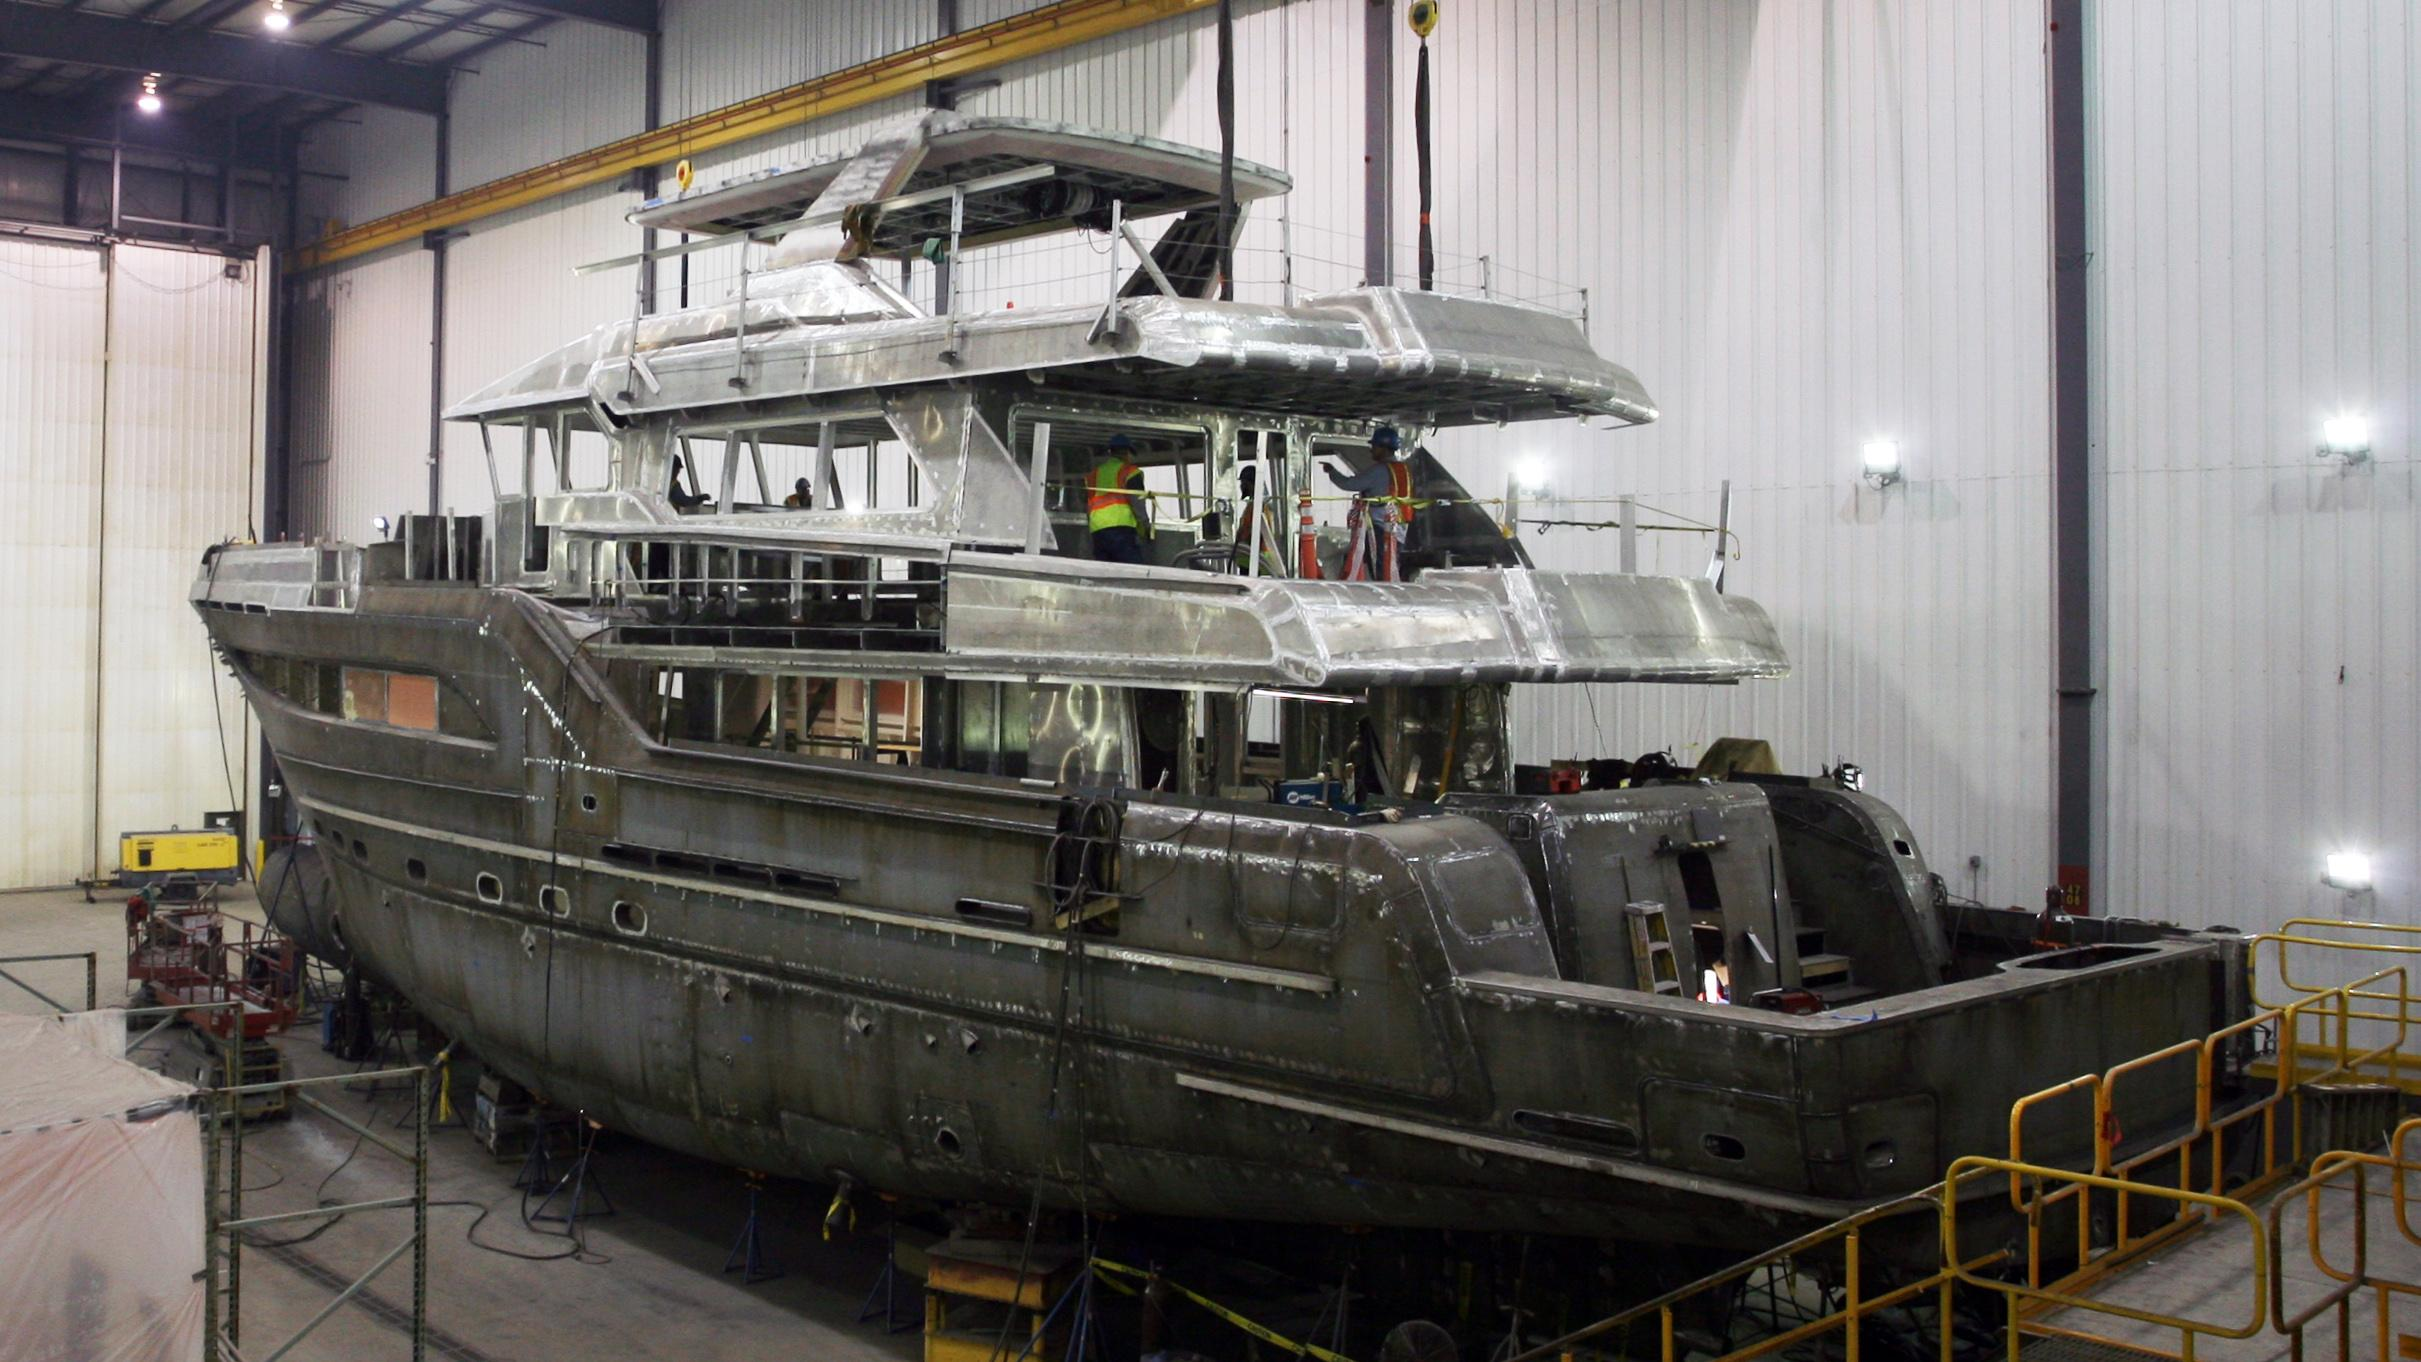 northland motoryacht burger boat 2017 32m hull superstructure